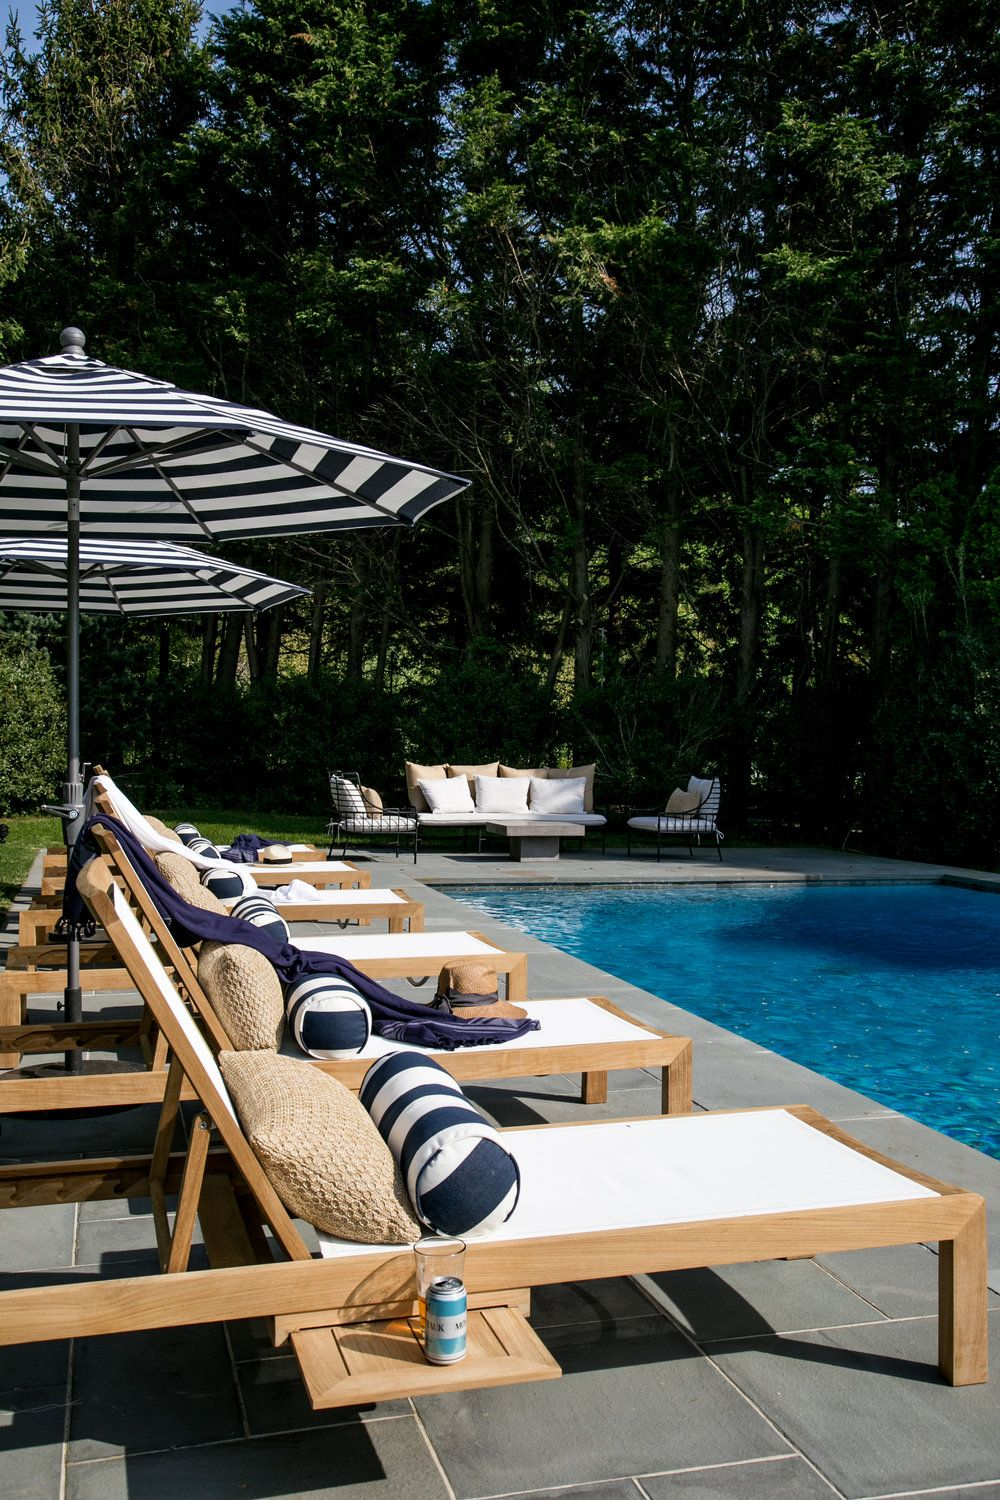 Pin By Nicole E Laws On Beach Pool Patio Furniture Pool Patio Pool Furniture